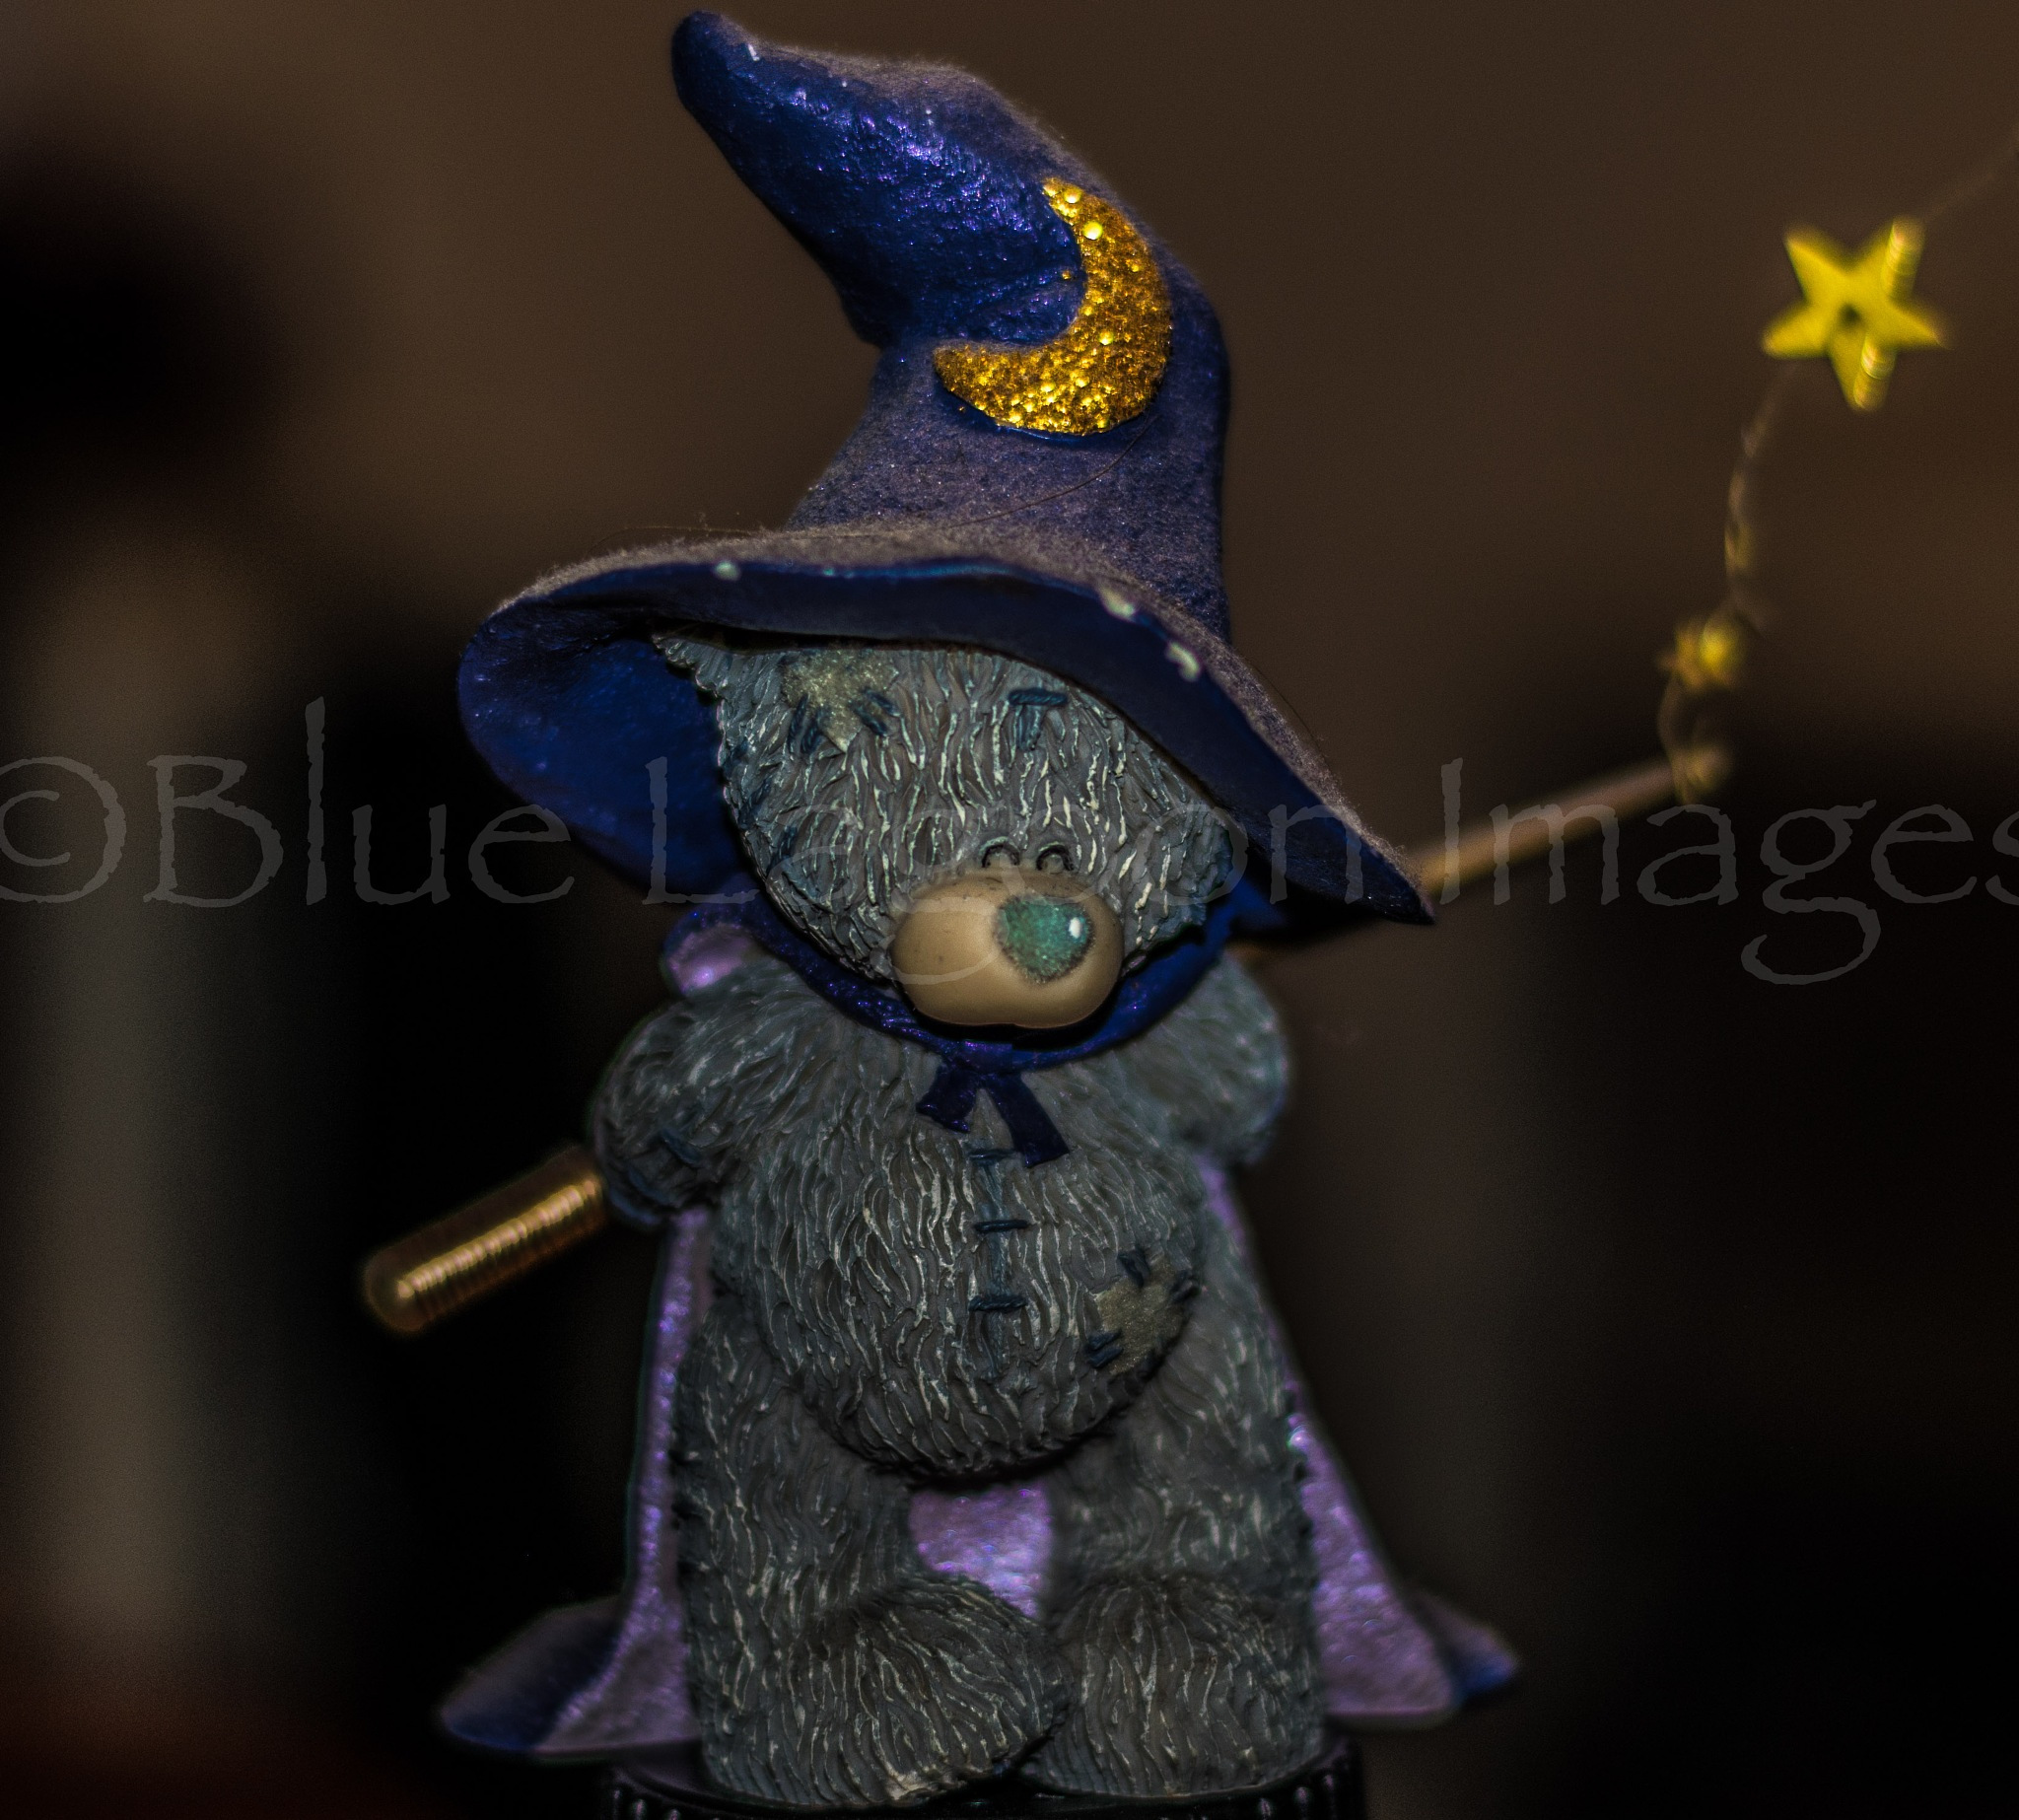 Wizard by Blue Lagoon Images